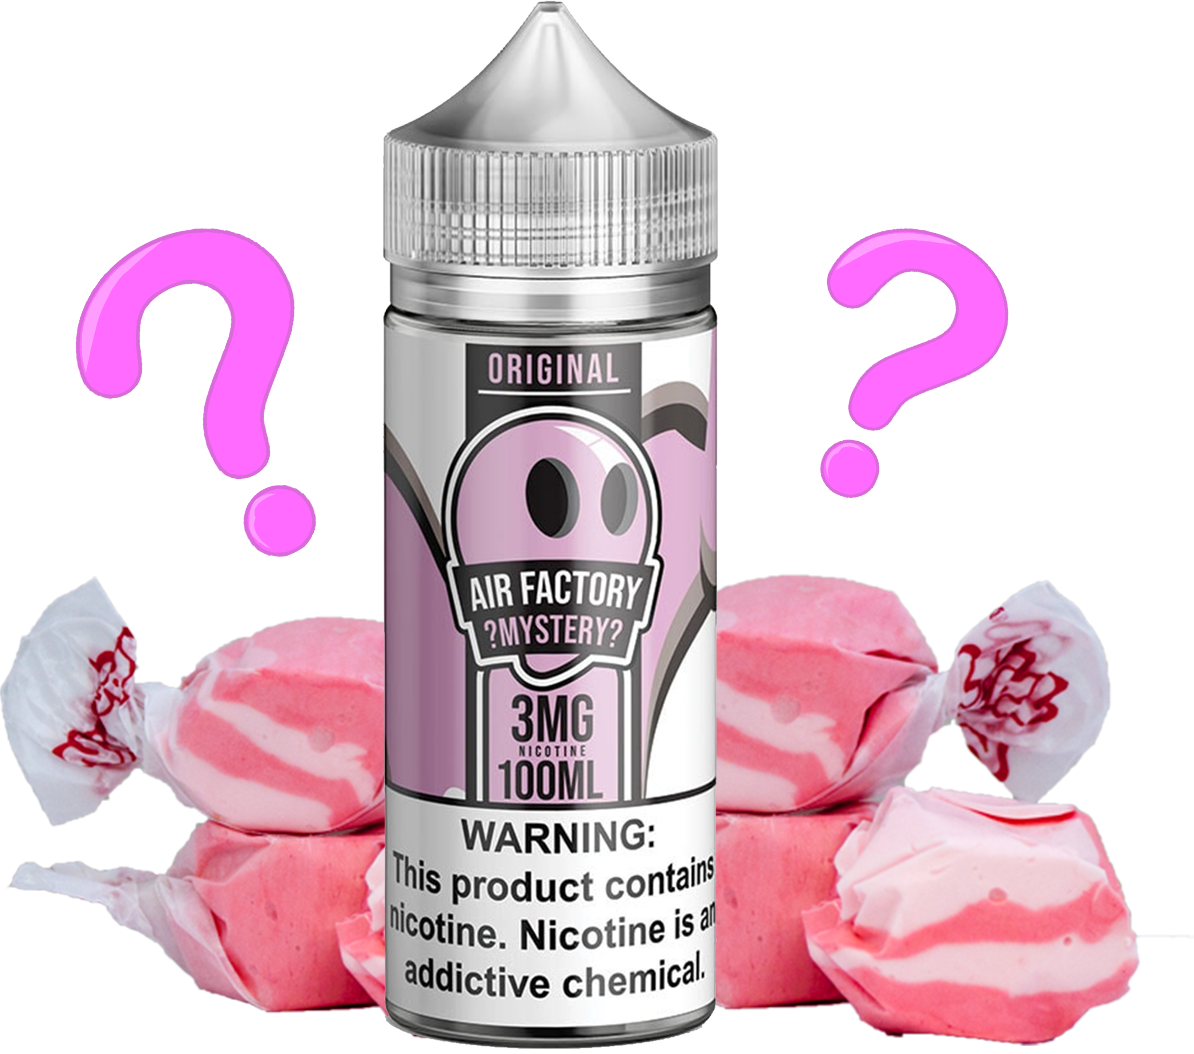 Air Factory 100ml bottle surrounded by mystery flavored taffy candy. All day vape!